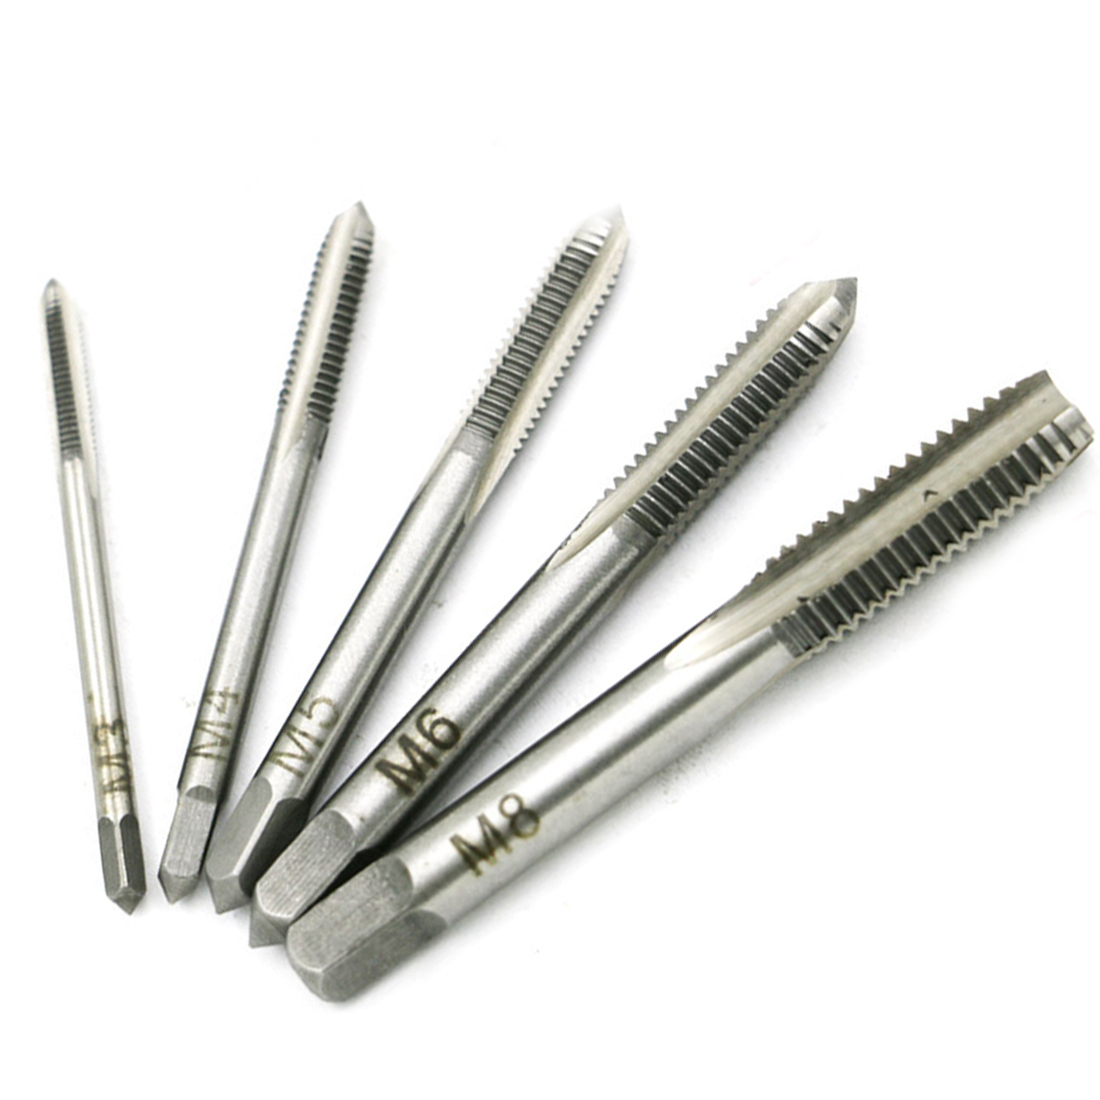 M3 M4 M5 M6 M8 5pcs/set HSS Machine Spiral Point Straight Fluted Screw Thread Hand Tap Drill Set Hand Tools 5pcs set hss m3 m4 m5 m6 m8 machine spiral point straight fluted screw thread metric plug hand tap drill set hand tools